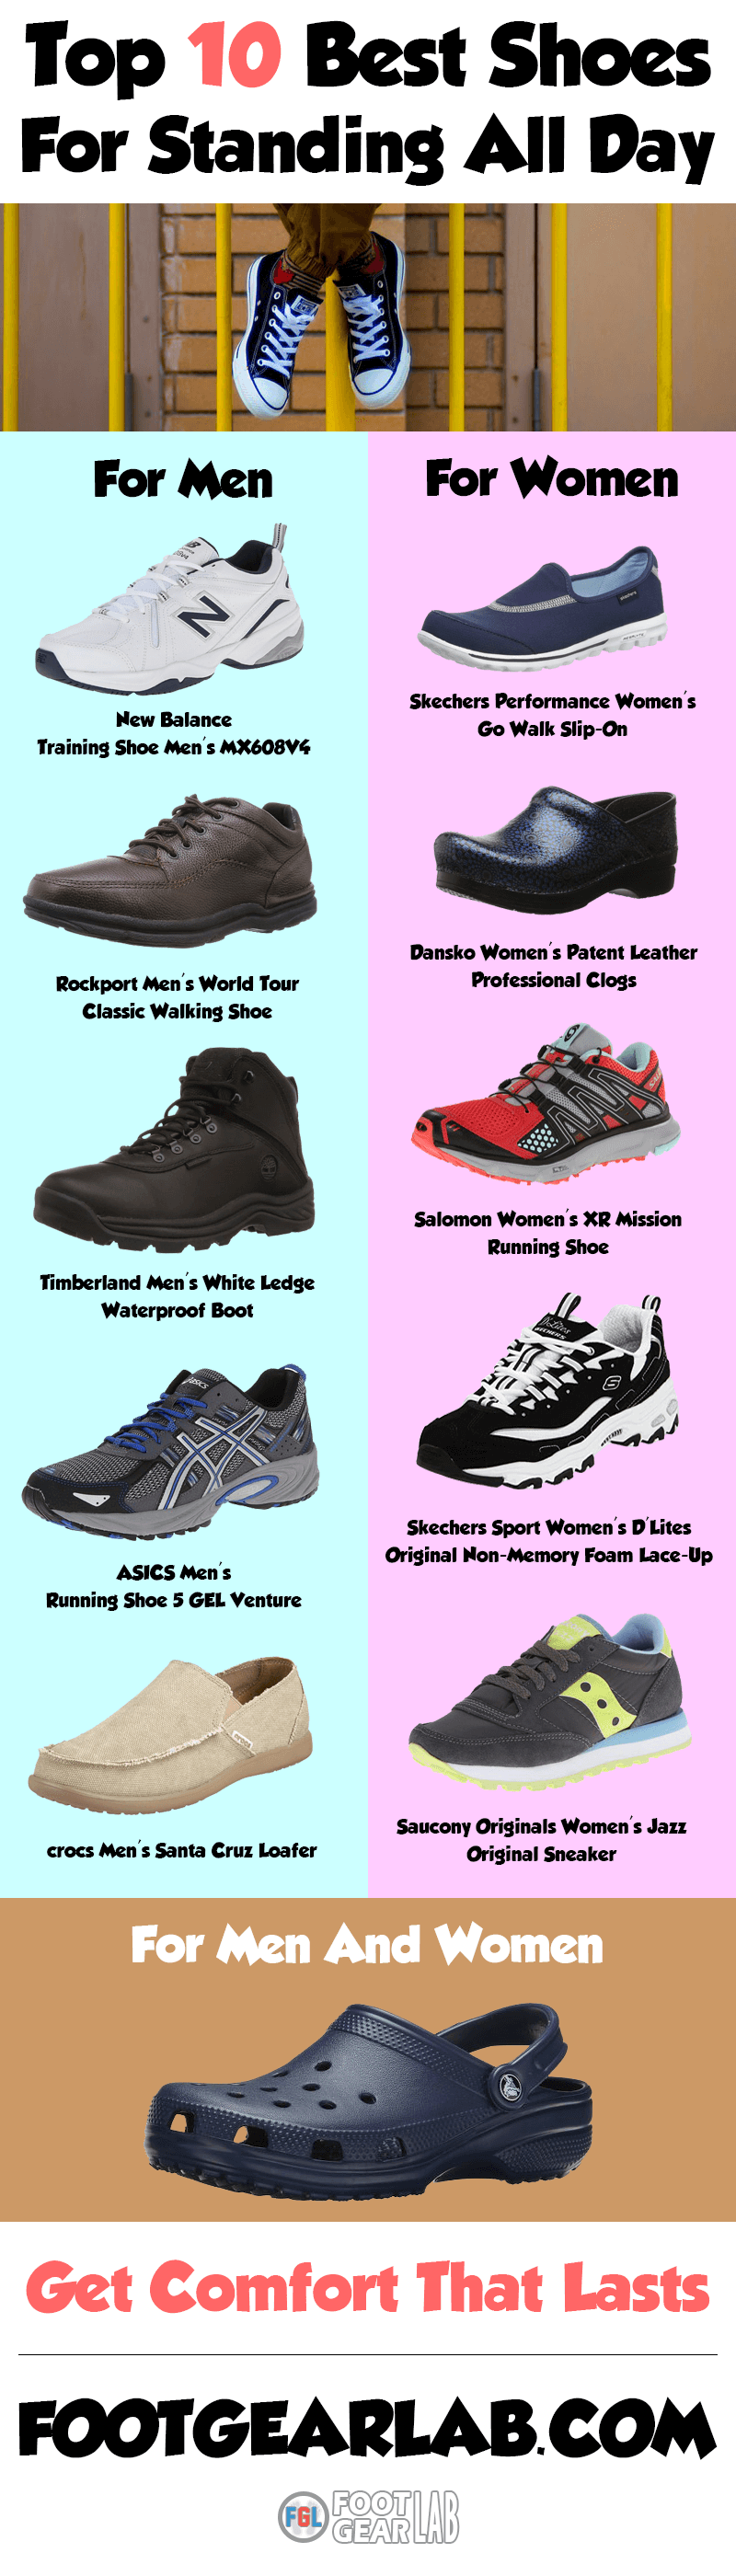 Top 10 Best Shoes For Standing All Day On Your Feet